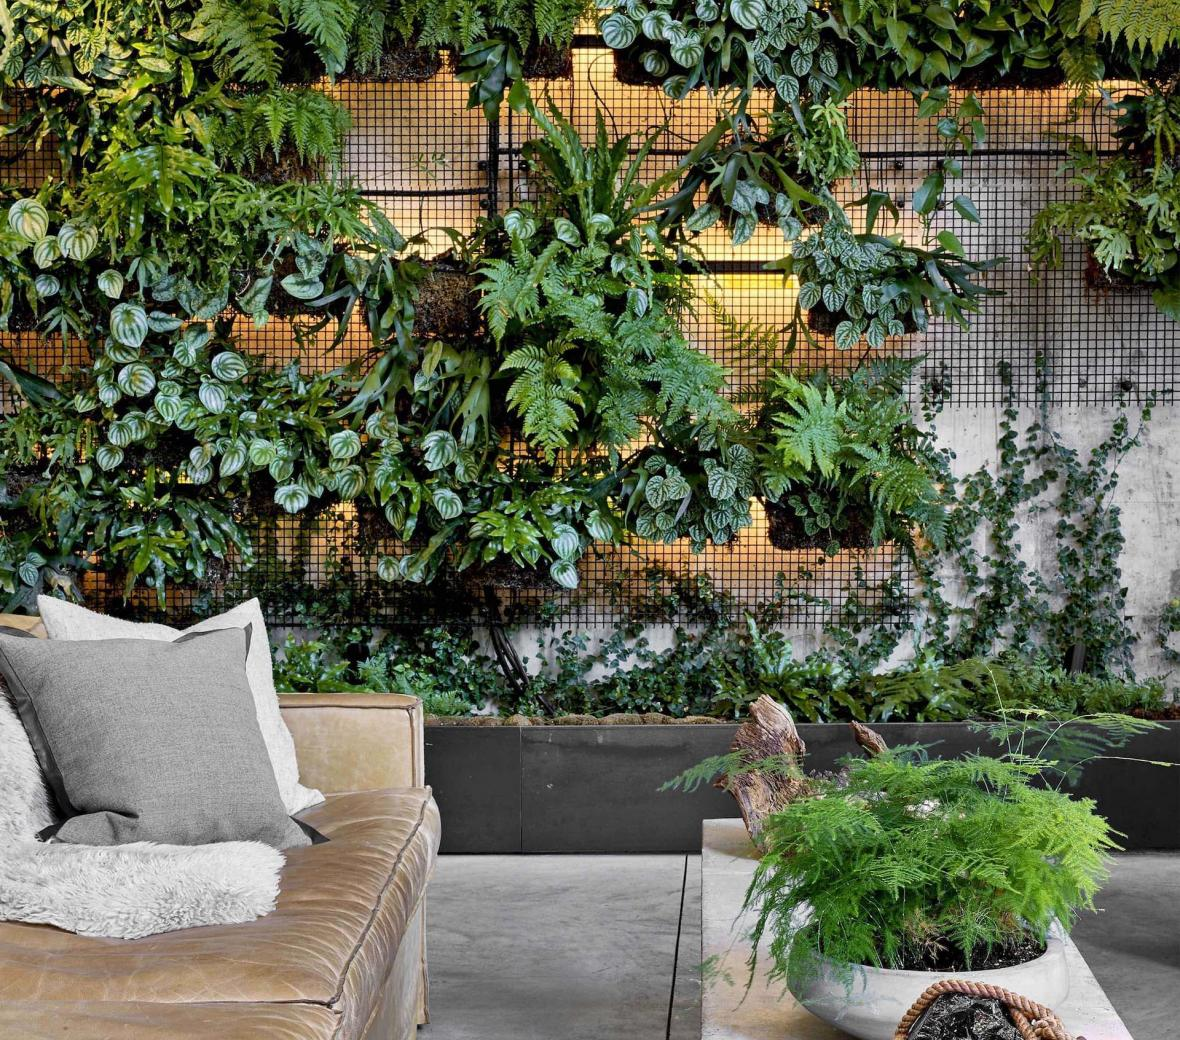 A greenery wall in the lobby of 1 Hotel Brooklyn Bridge.